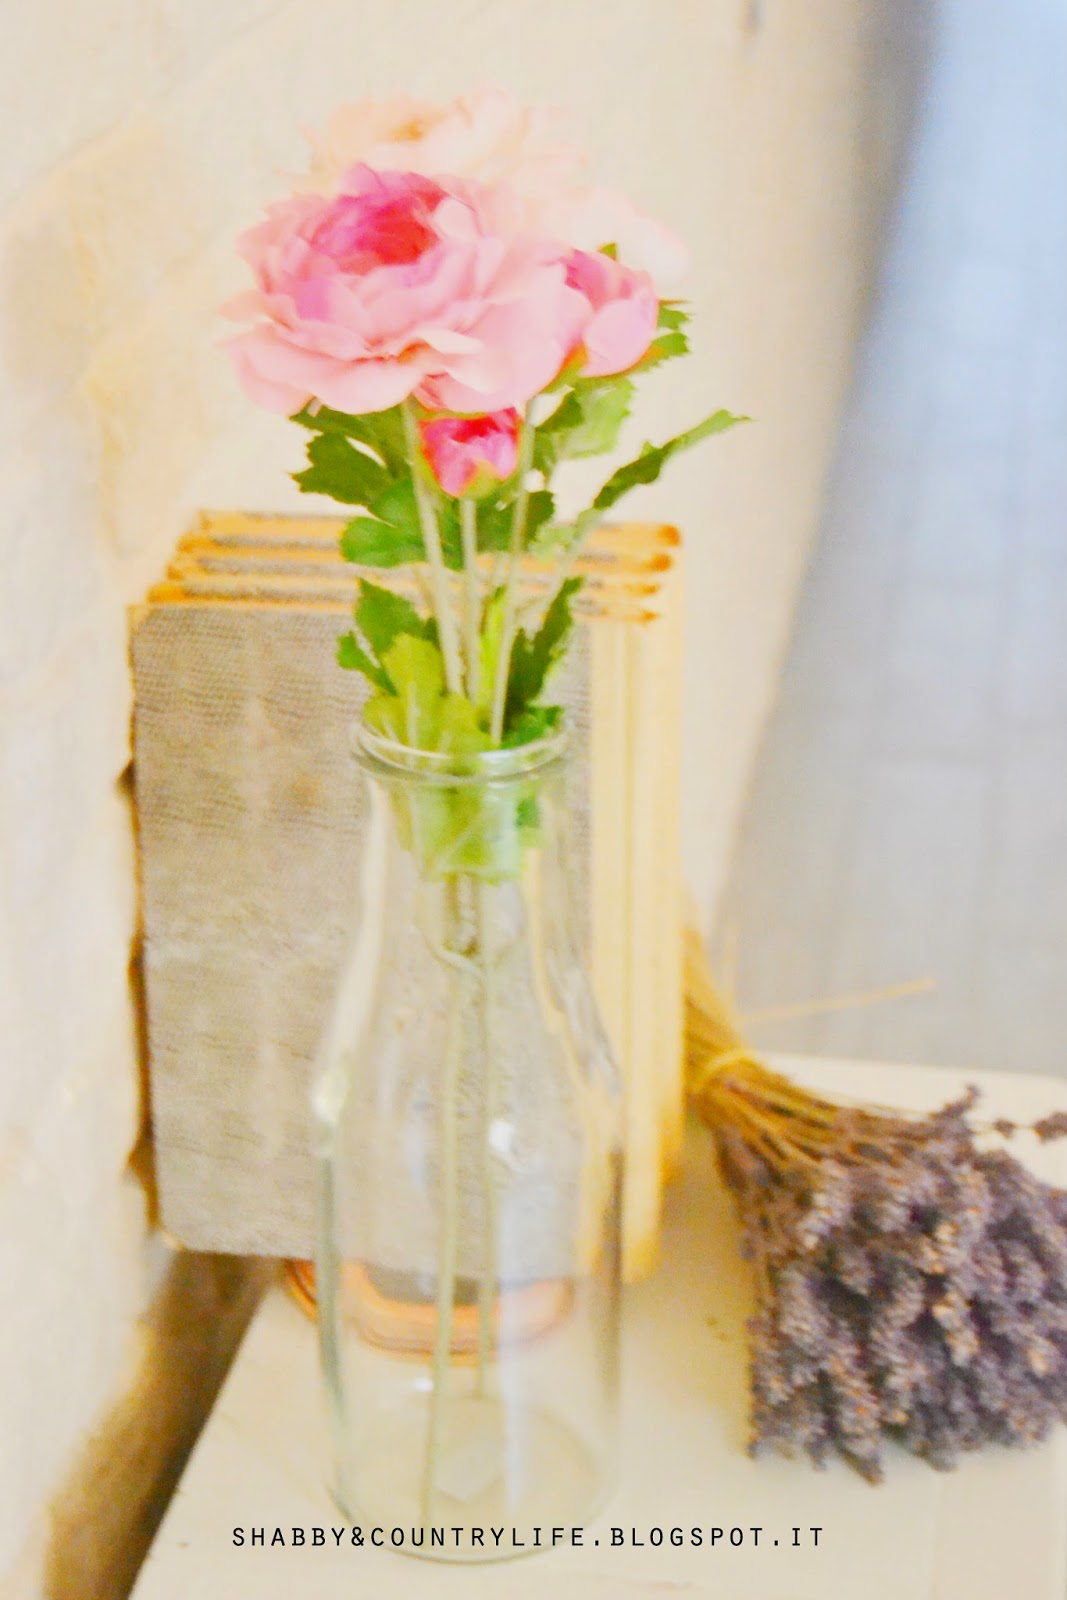 Roses in glass jar